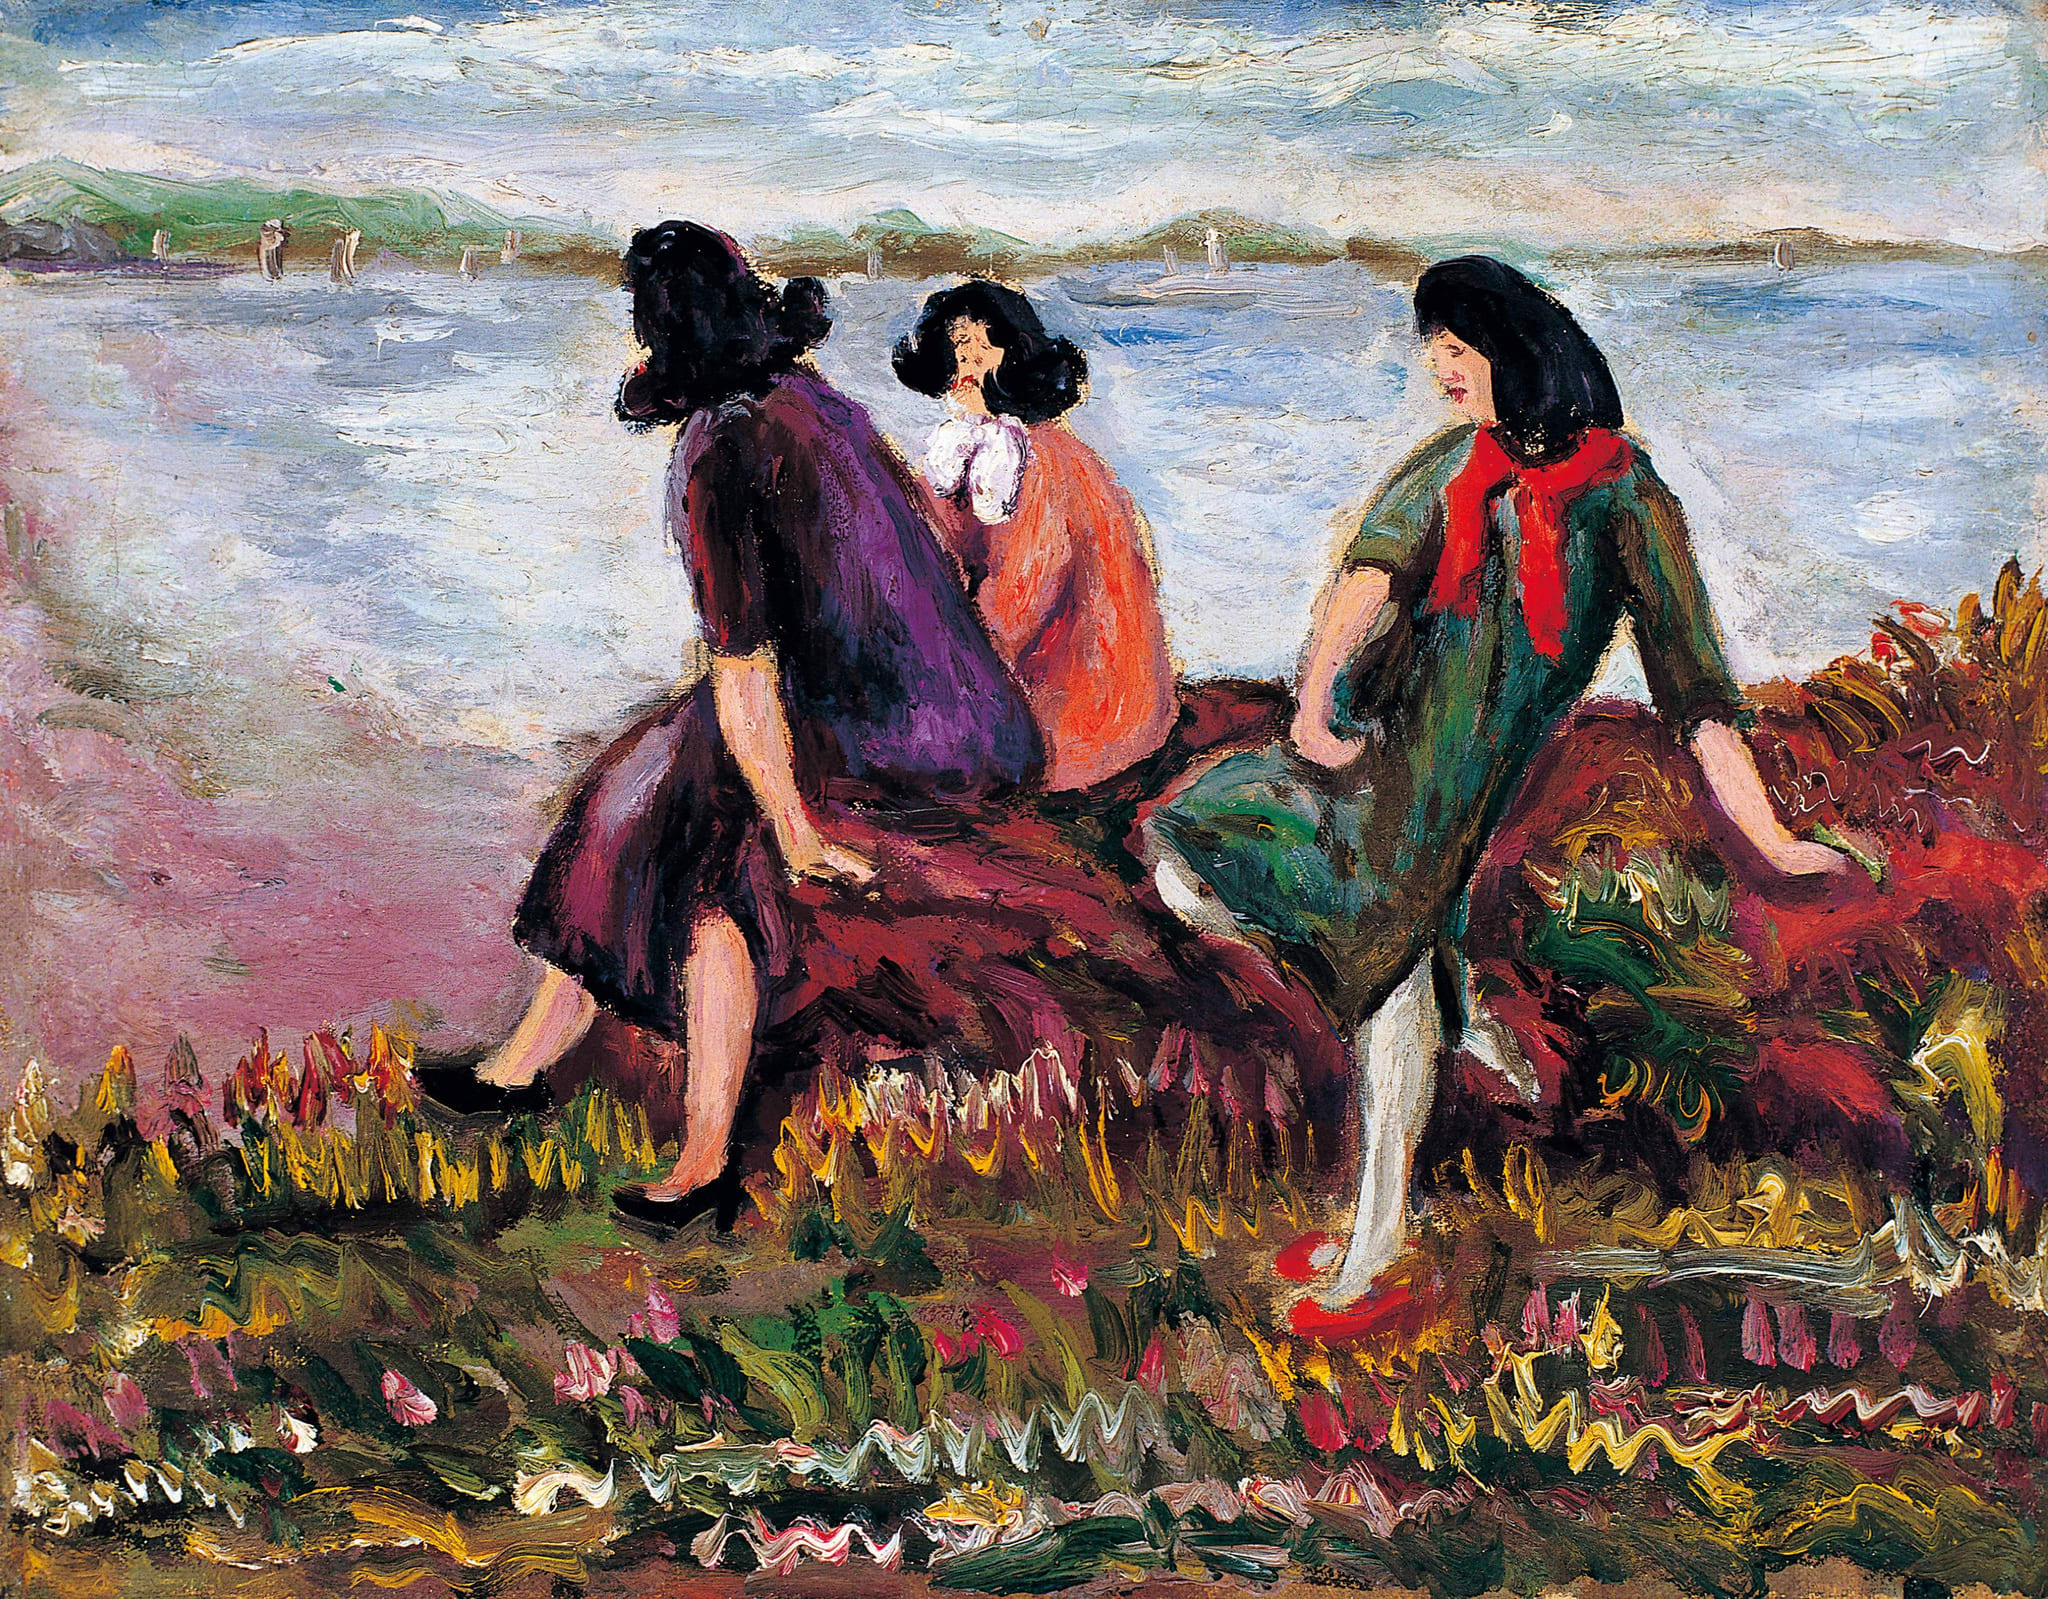 Three Beauties by the Sea by Chen Cheng-po